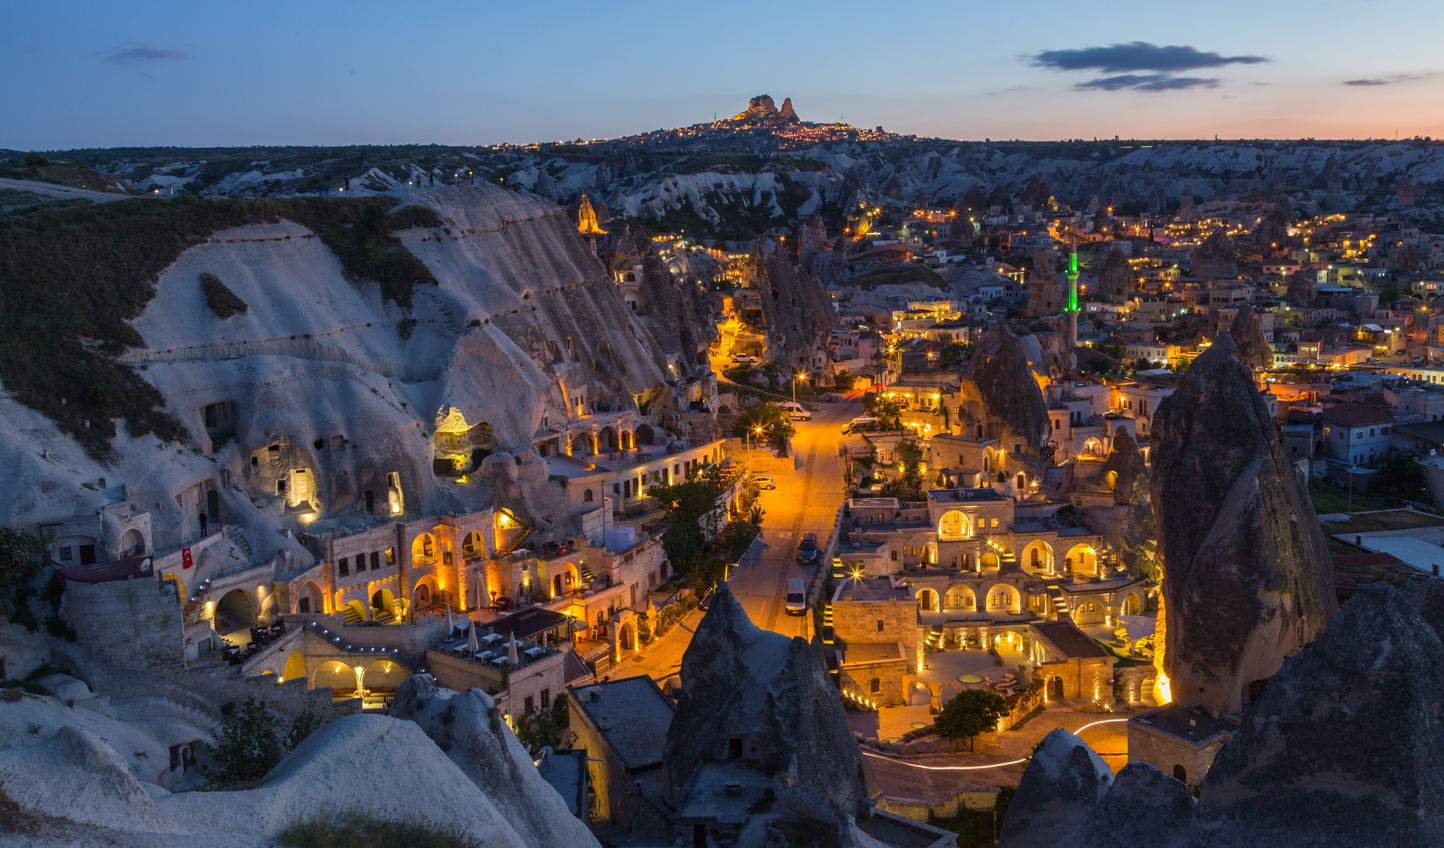 Say goodnight to cultural Cappadocia